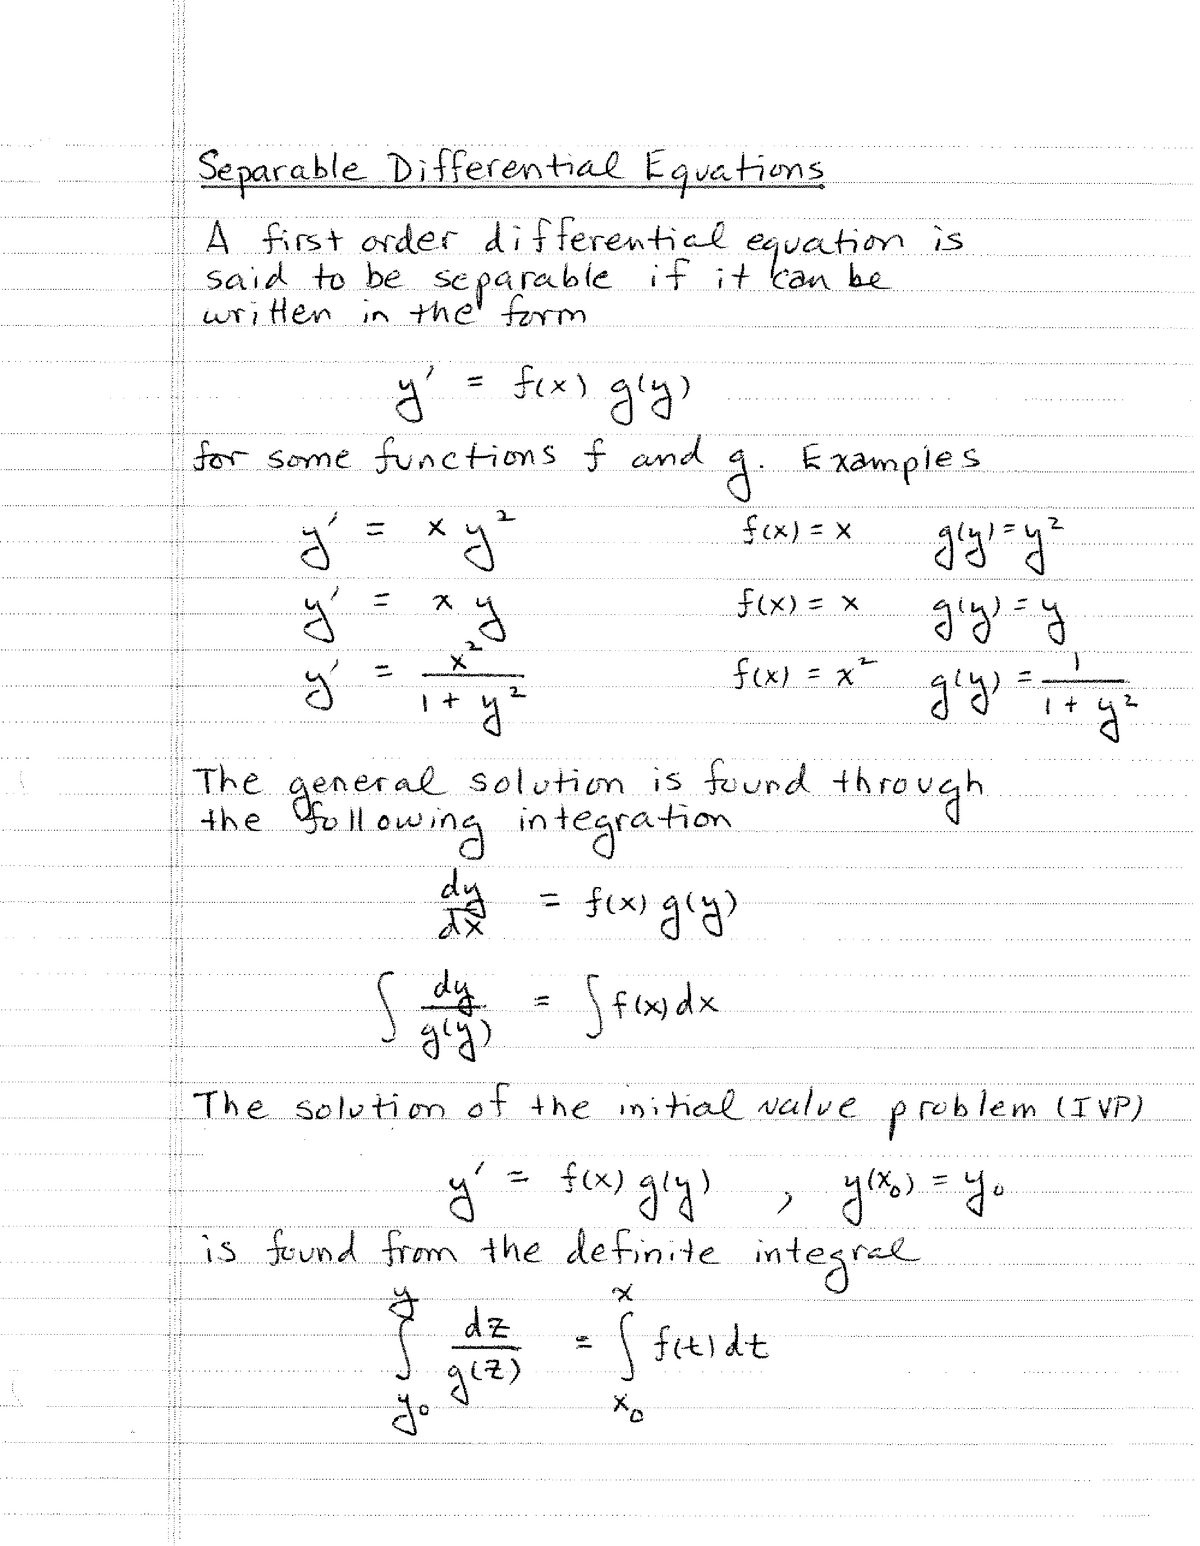 M450 2017-2018 Lecture Notes 2 - Separable Differential